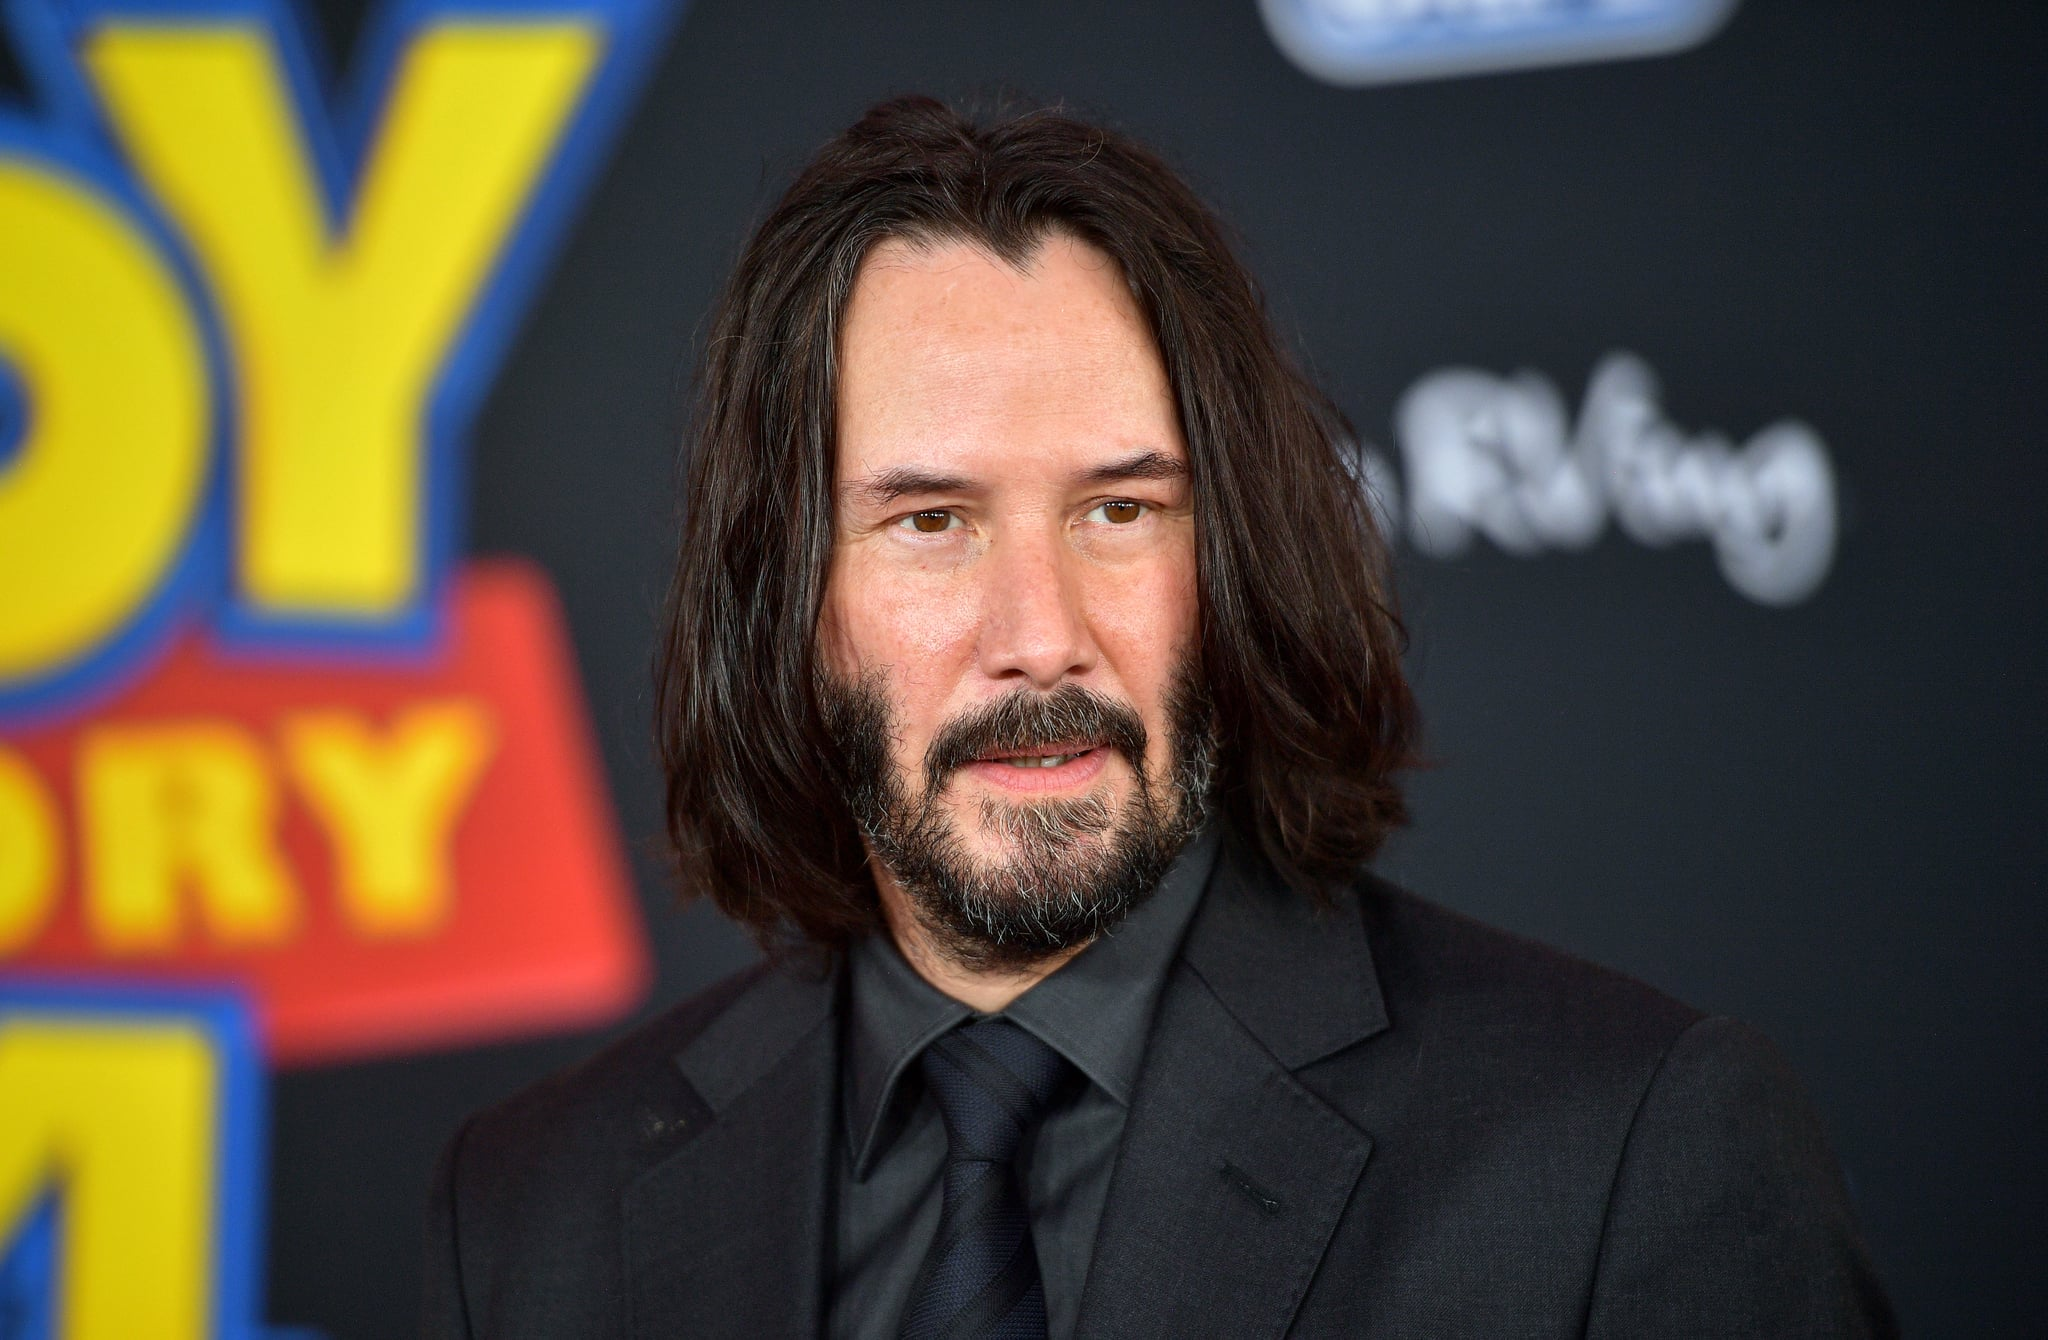 LOS ANGELES, CALIFORNIA - JUNE 11: Keanu Reeves attends the premiere of Disney and Pixar's